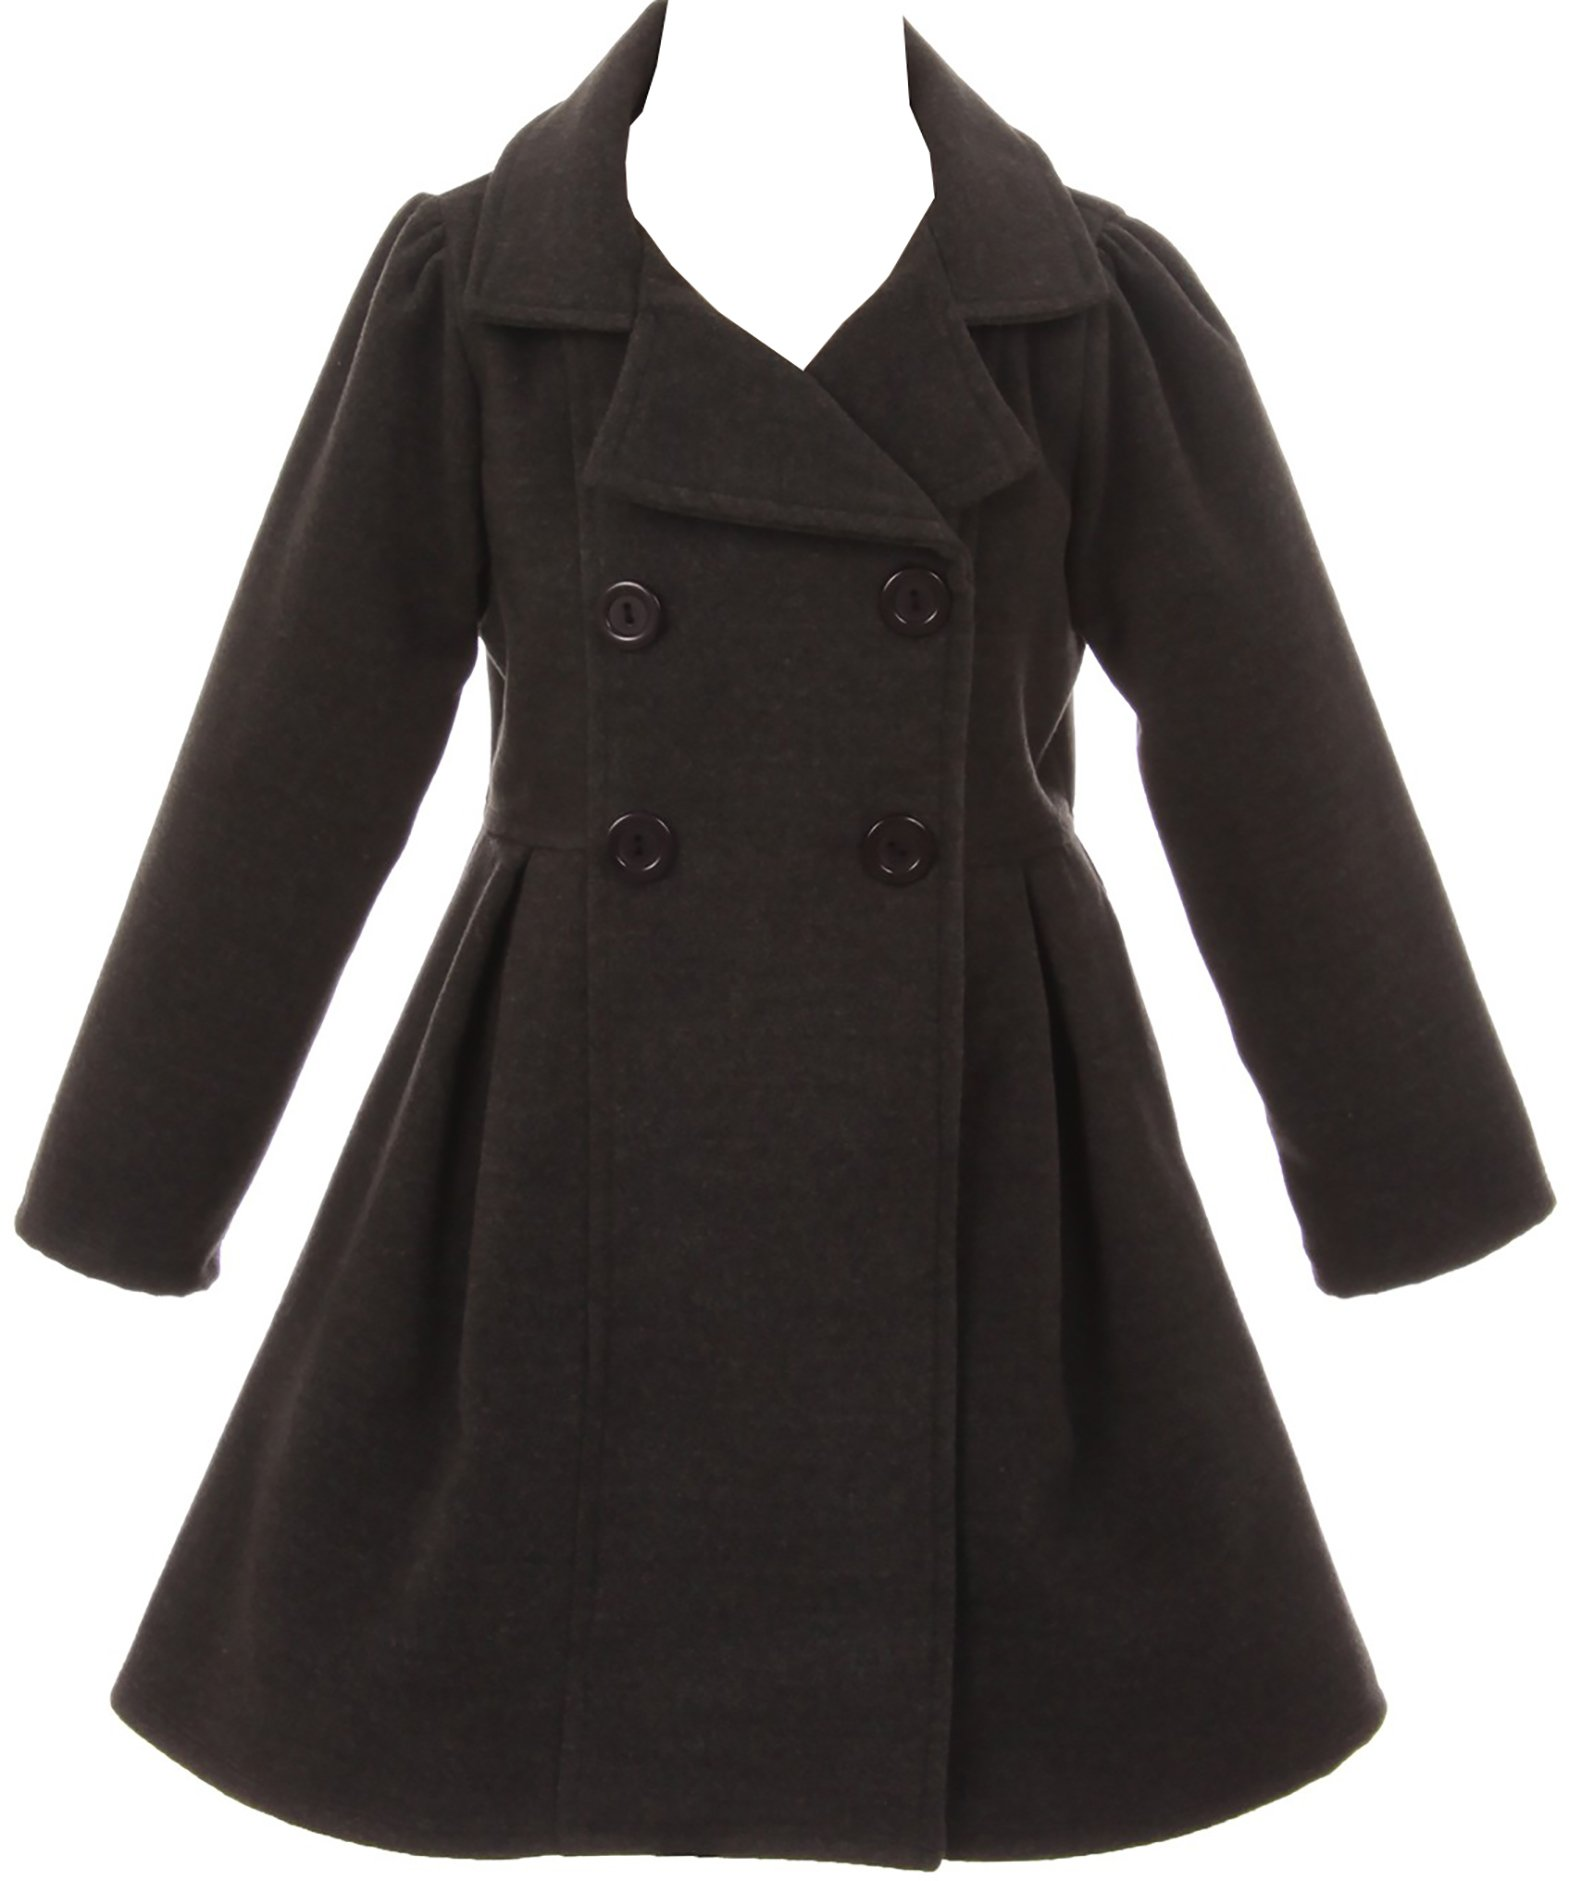 Girl Winter Dress Coat Long Sleeve Buttons and Pockets For Big Girl Charcoal 8 J2049